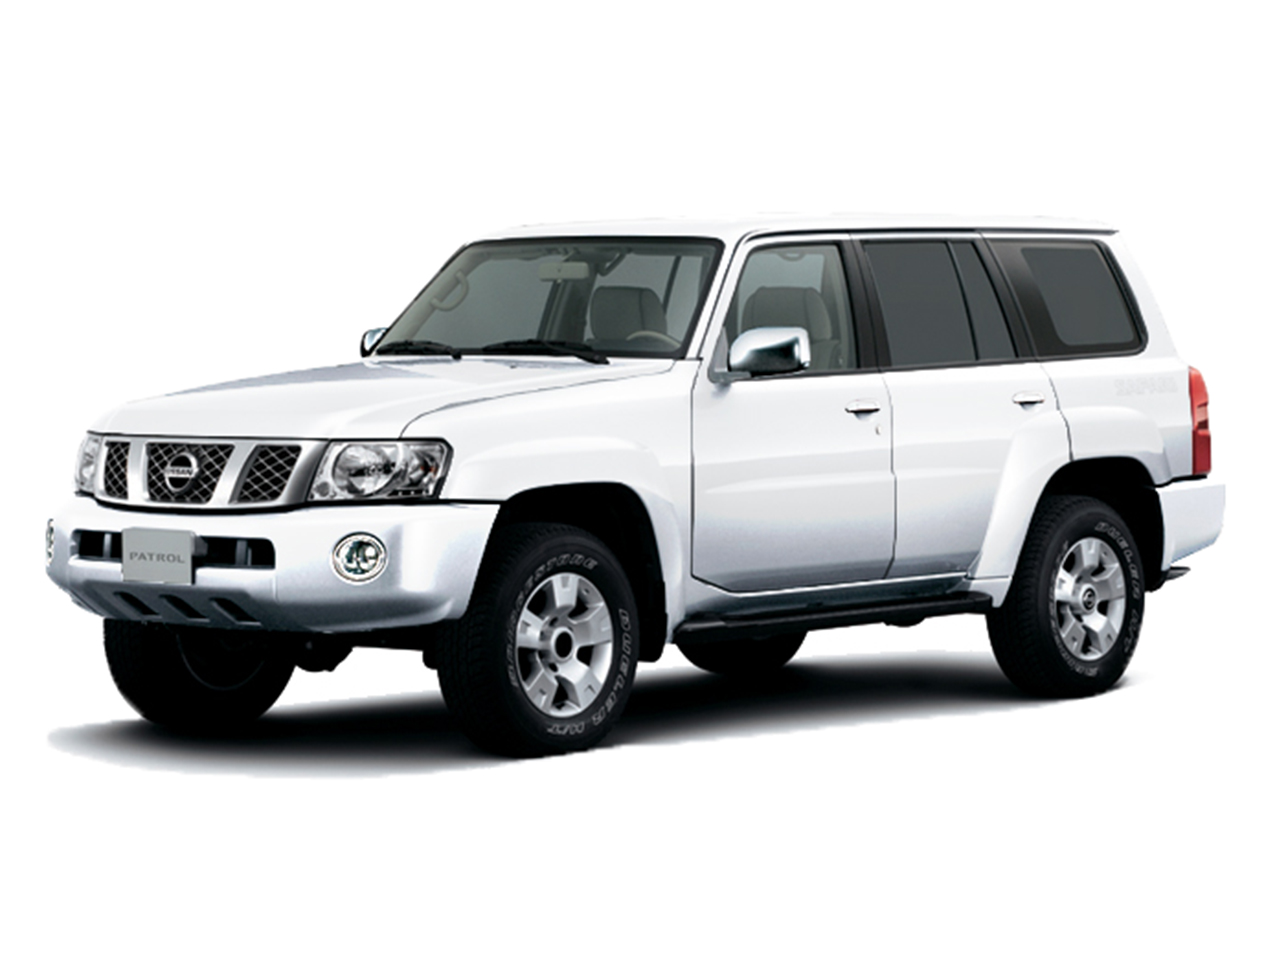 2018 nissan patrol safari prices in uae gulf specs reviews for dubai abu dhabi and sharjah. Black Bedroom Furniture Sets. Home Design Ideas